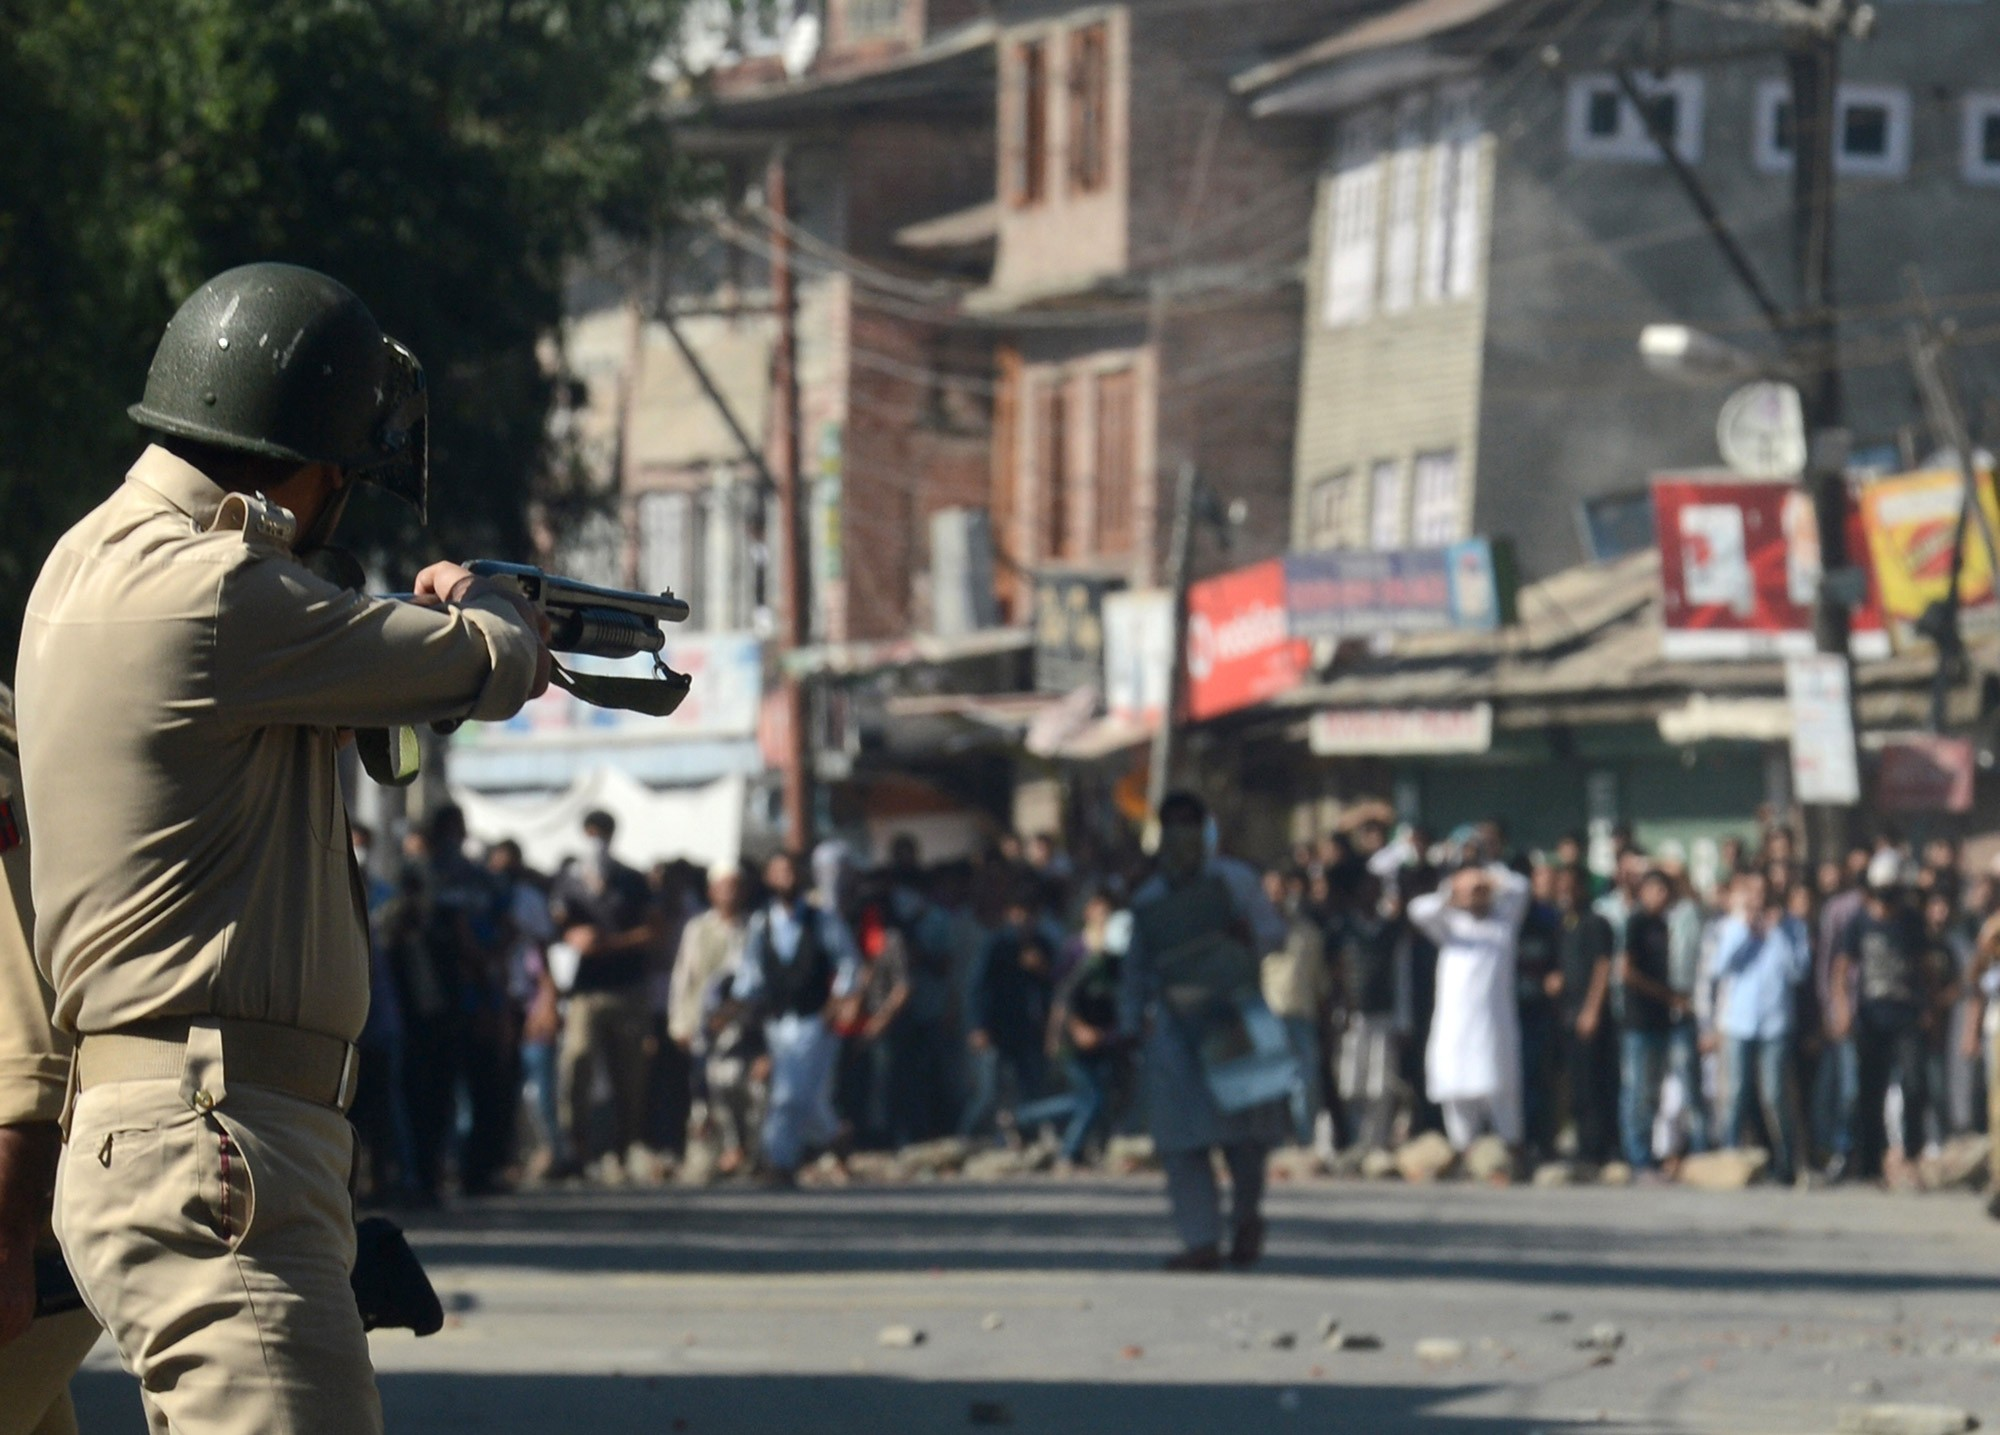 'Non-lethal weapons' have only aggravated harm and suffering in Kashmir. Photo credit: AFP